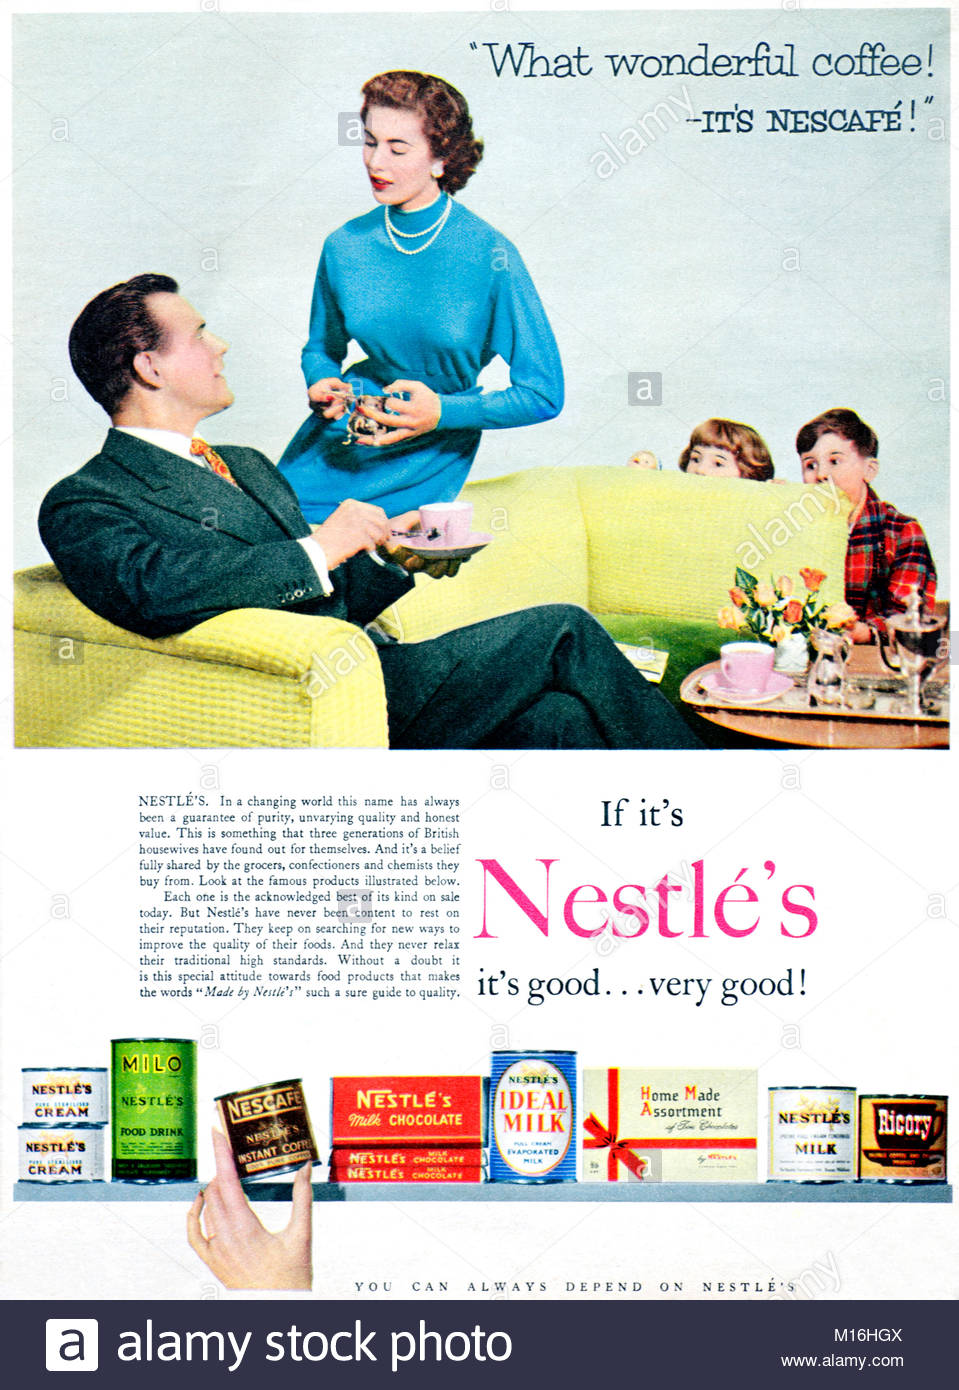 Nestle's vintage advertising 1950s - Stock Image